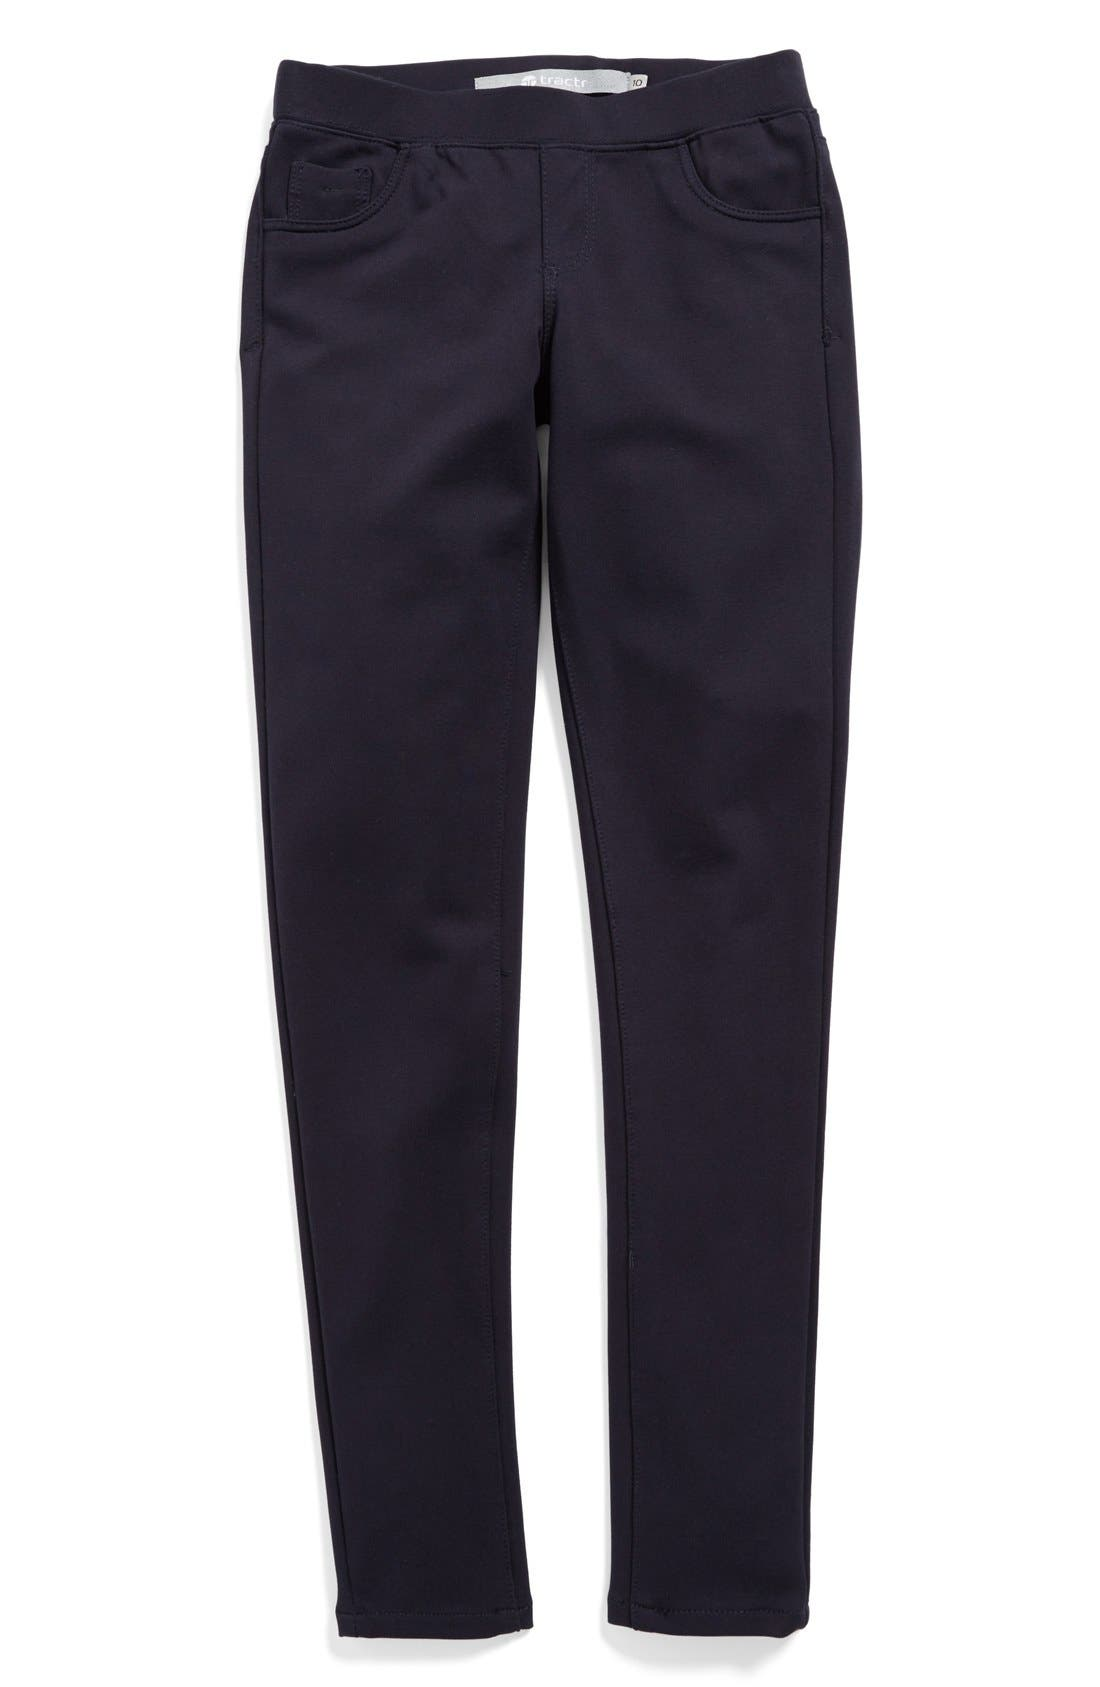 Ponte Knit Skinny Pants,                         Main,                         color, Navy